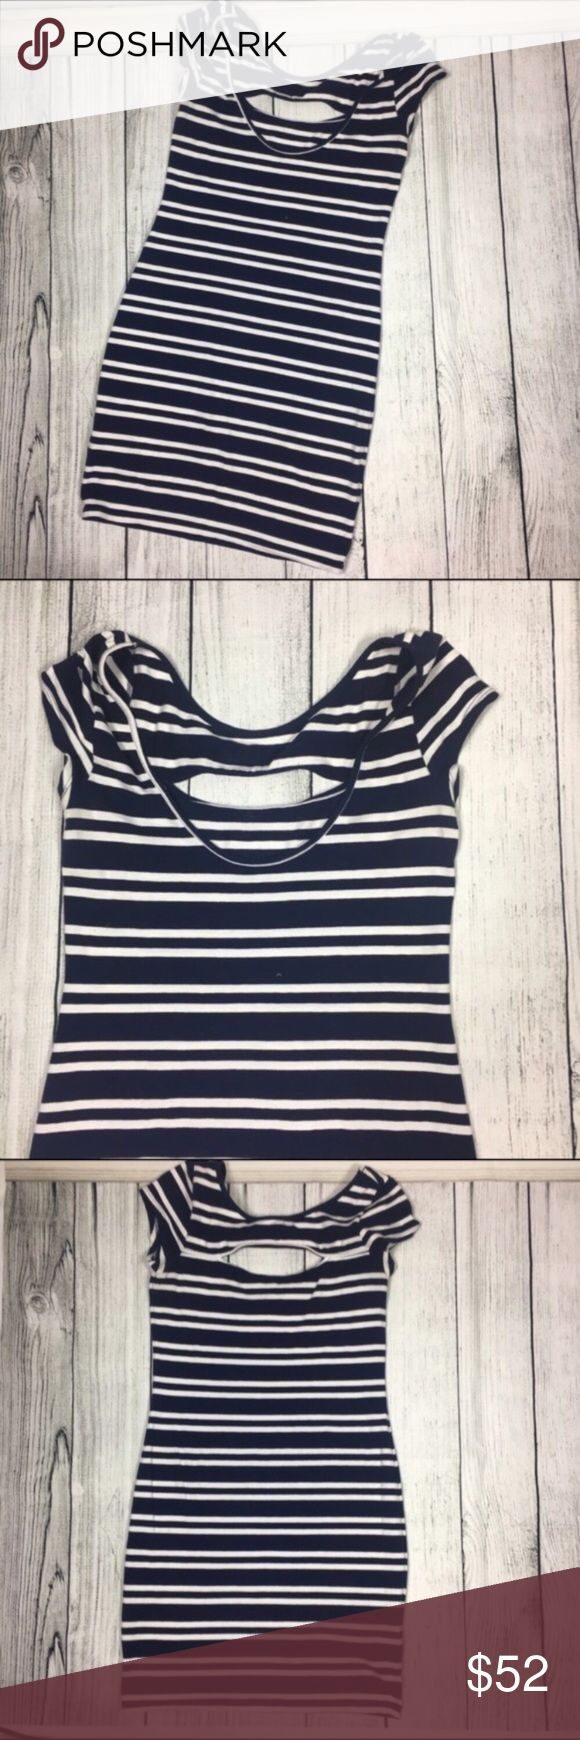 """Striped bodycon dress 👗 Absolutely stunning navy blue with white stripes bodycon dress. Has a very sexy slot in the front where the chest area is. Used only once so still in a very good condition. Made out of 96% cotton and 4% spandex materials. MEASUREMENTS: 34"""" length and bust 16"""" ❤ Guess Dresses Mini"""